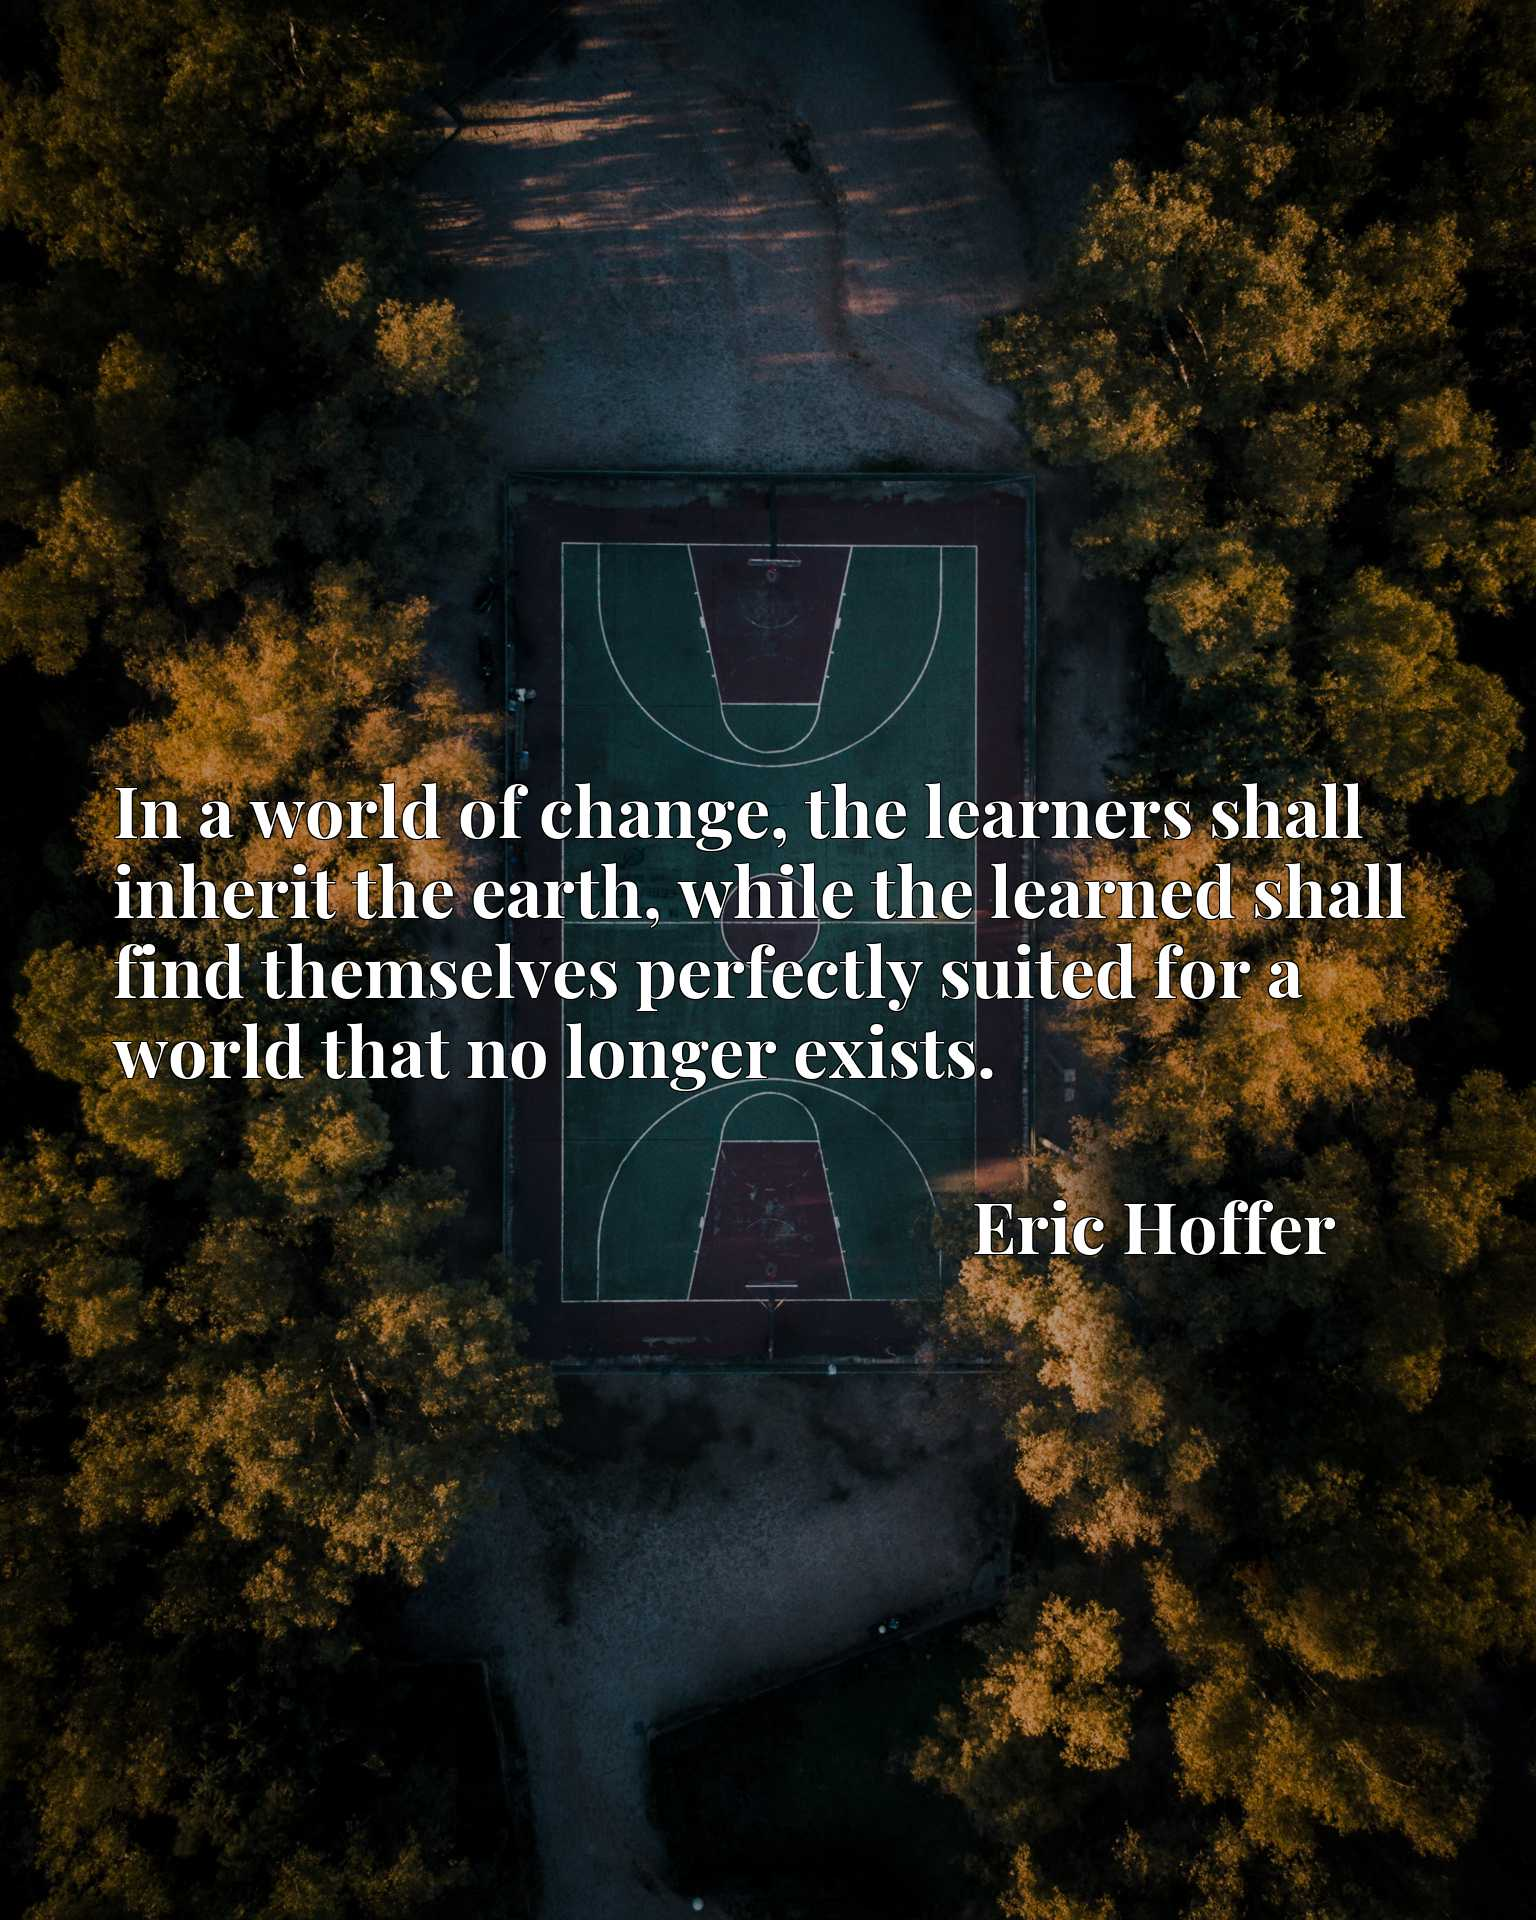 In a world of change, the learners shall inherit the earth, while the learned shall find themselves perfectly suited for a world that no longer exists.